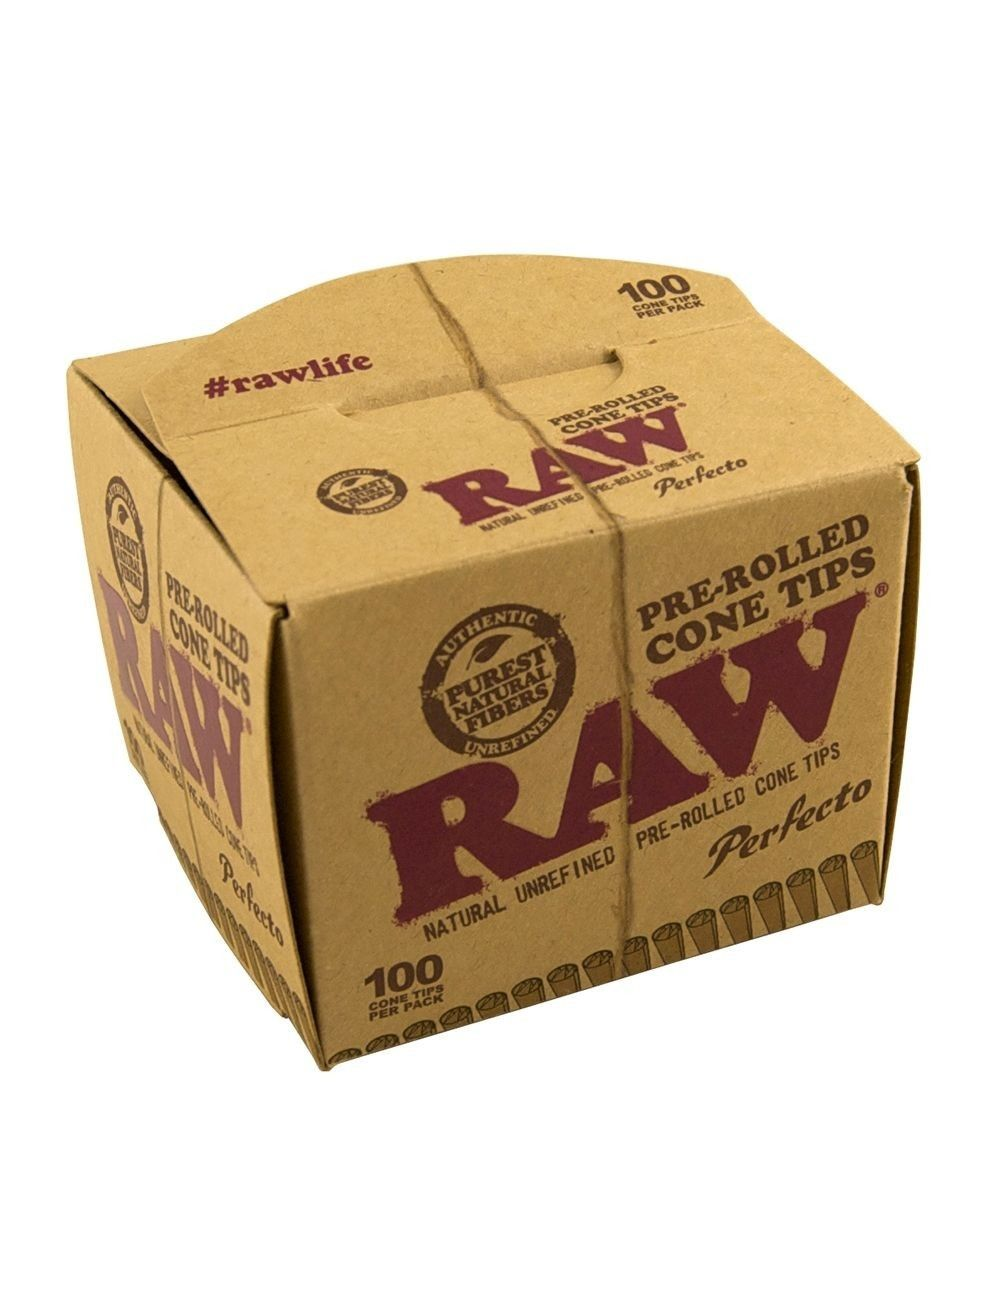 RAW Prerolled Cone Tips 100